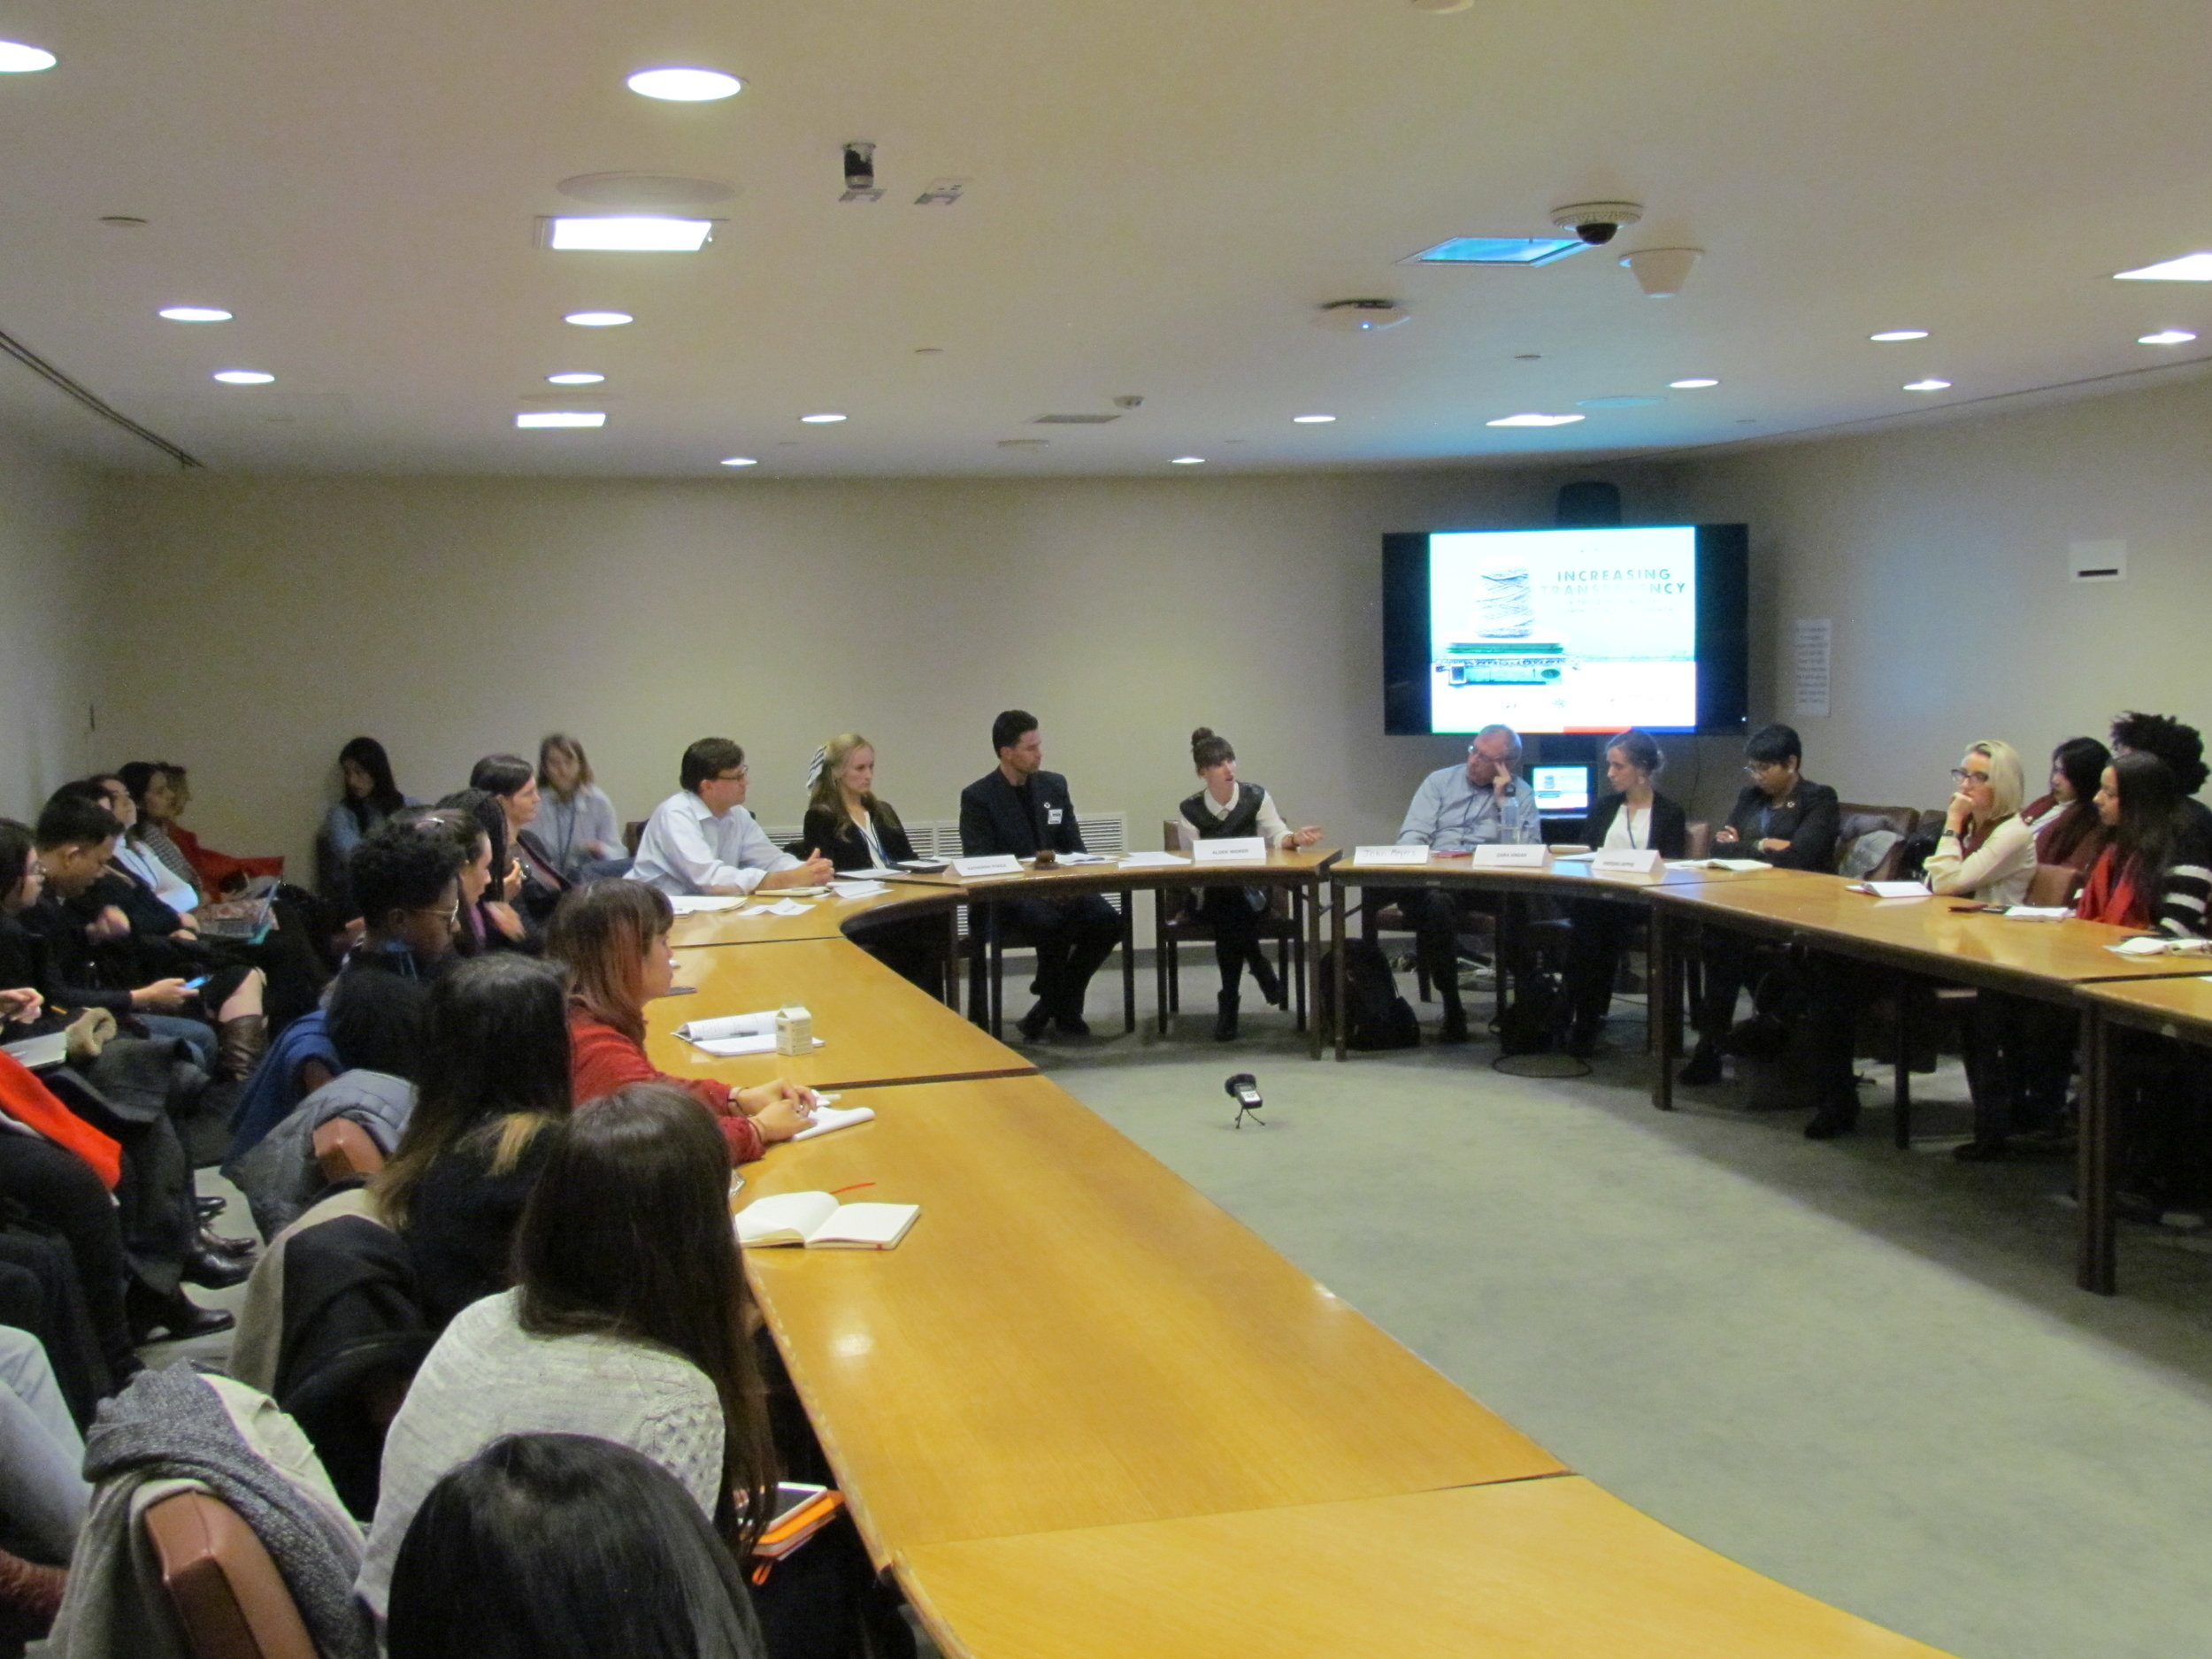 A panel discussion  Increasing Transparency in the Fashion Industry to Promote Inclusive Growth  at the United Nations.